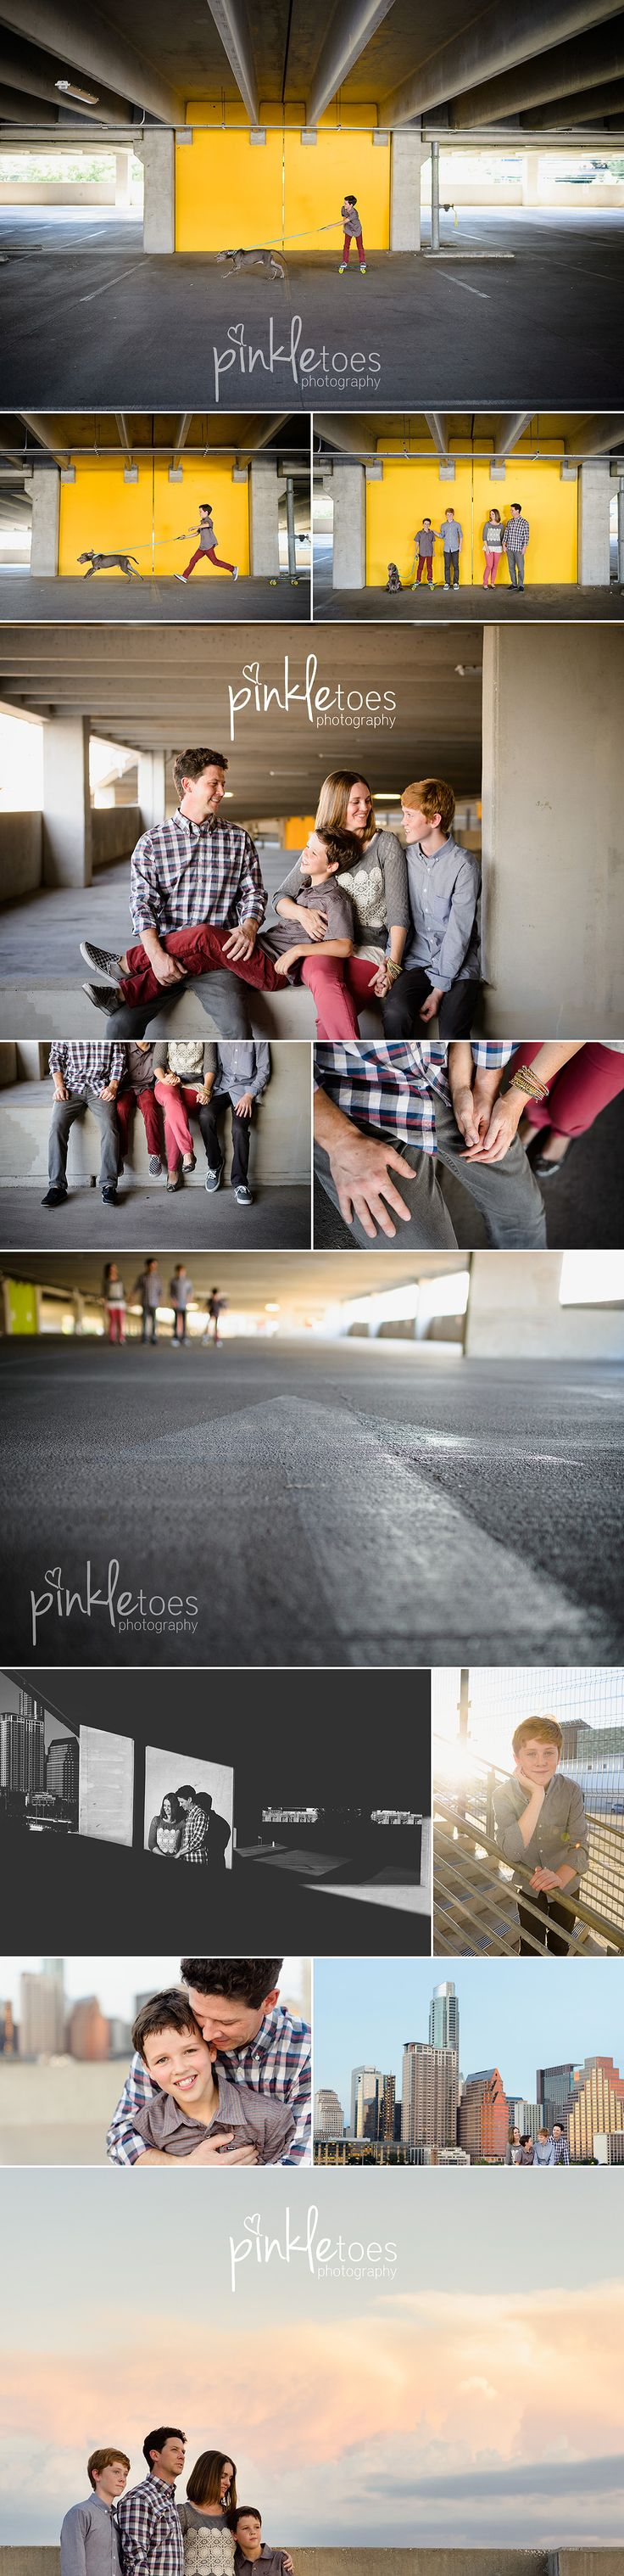 hp-pinkle-toes-family-urban-modern-lifestyle-photography-austin-texas